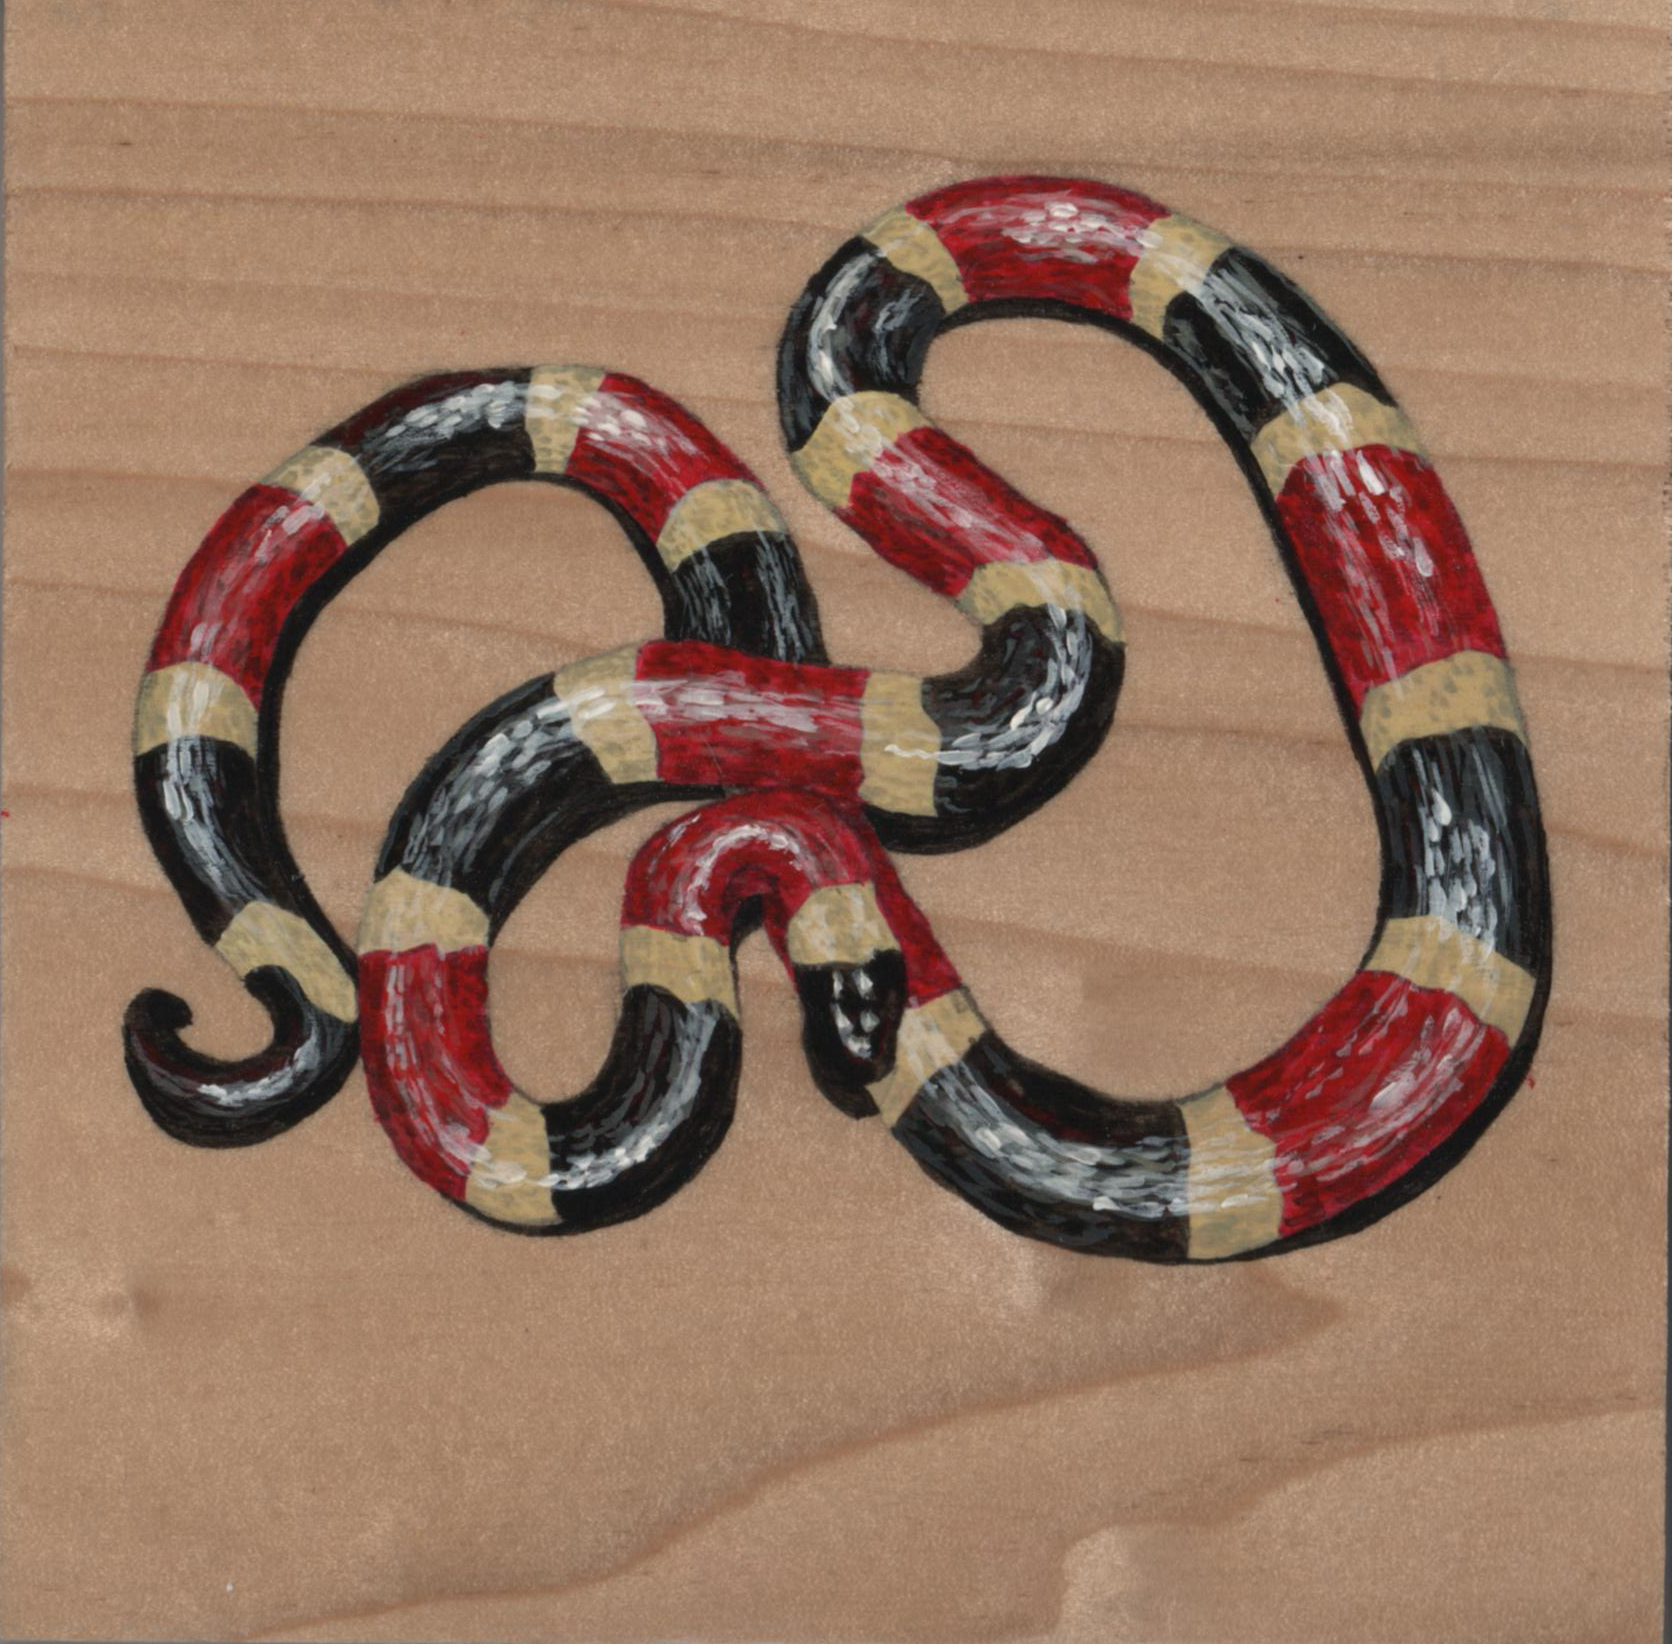 Micruroides Euryxanthus Snake_Painting on wood_01.jpg